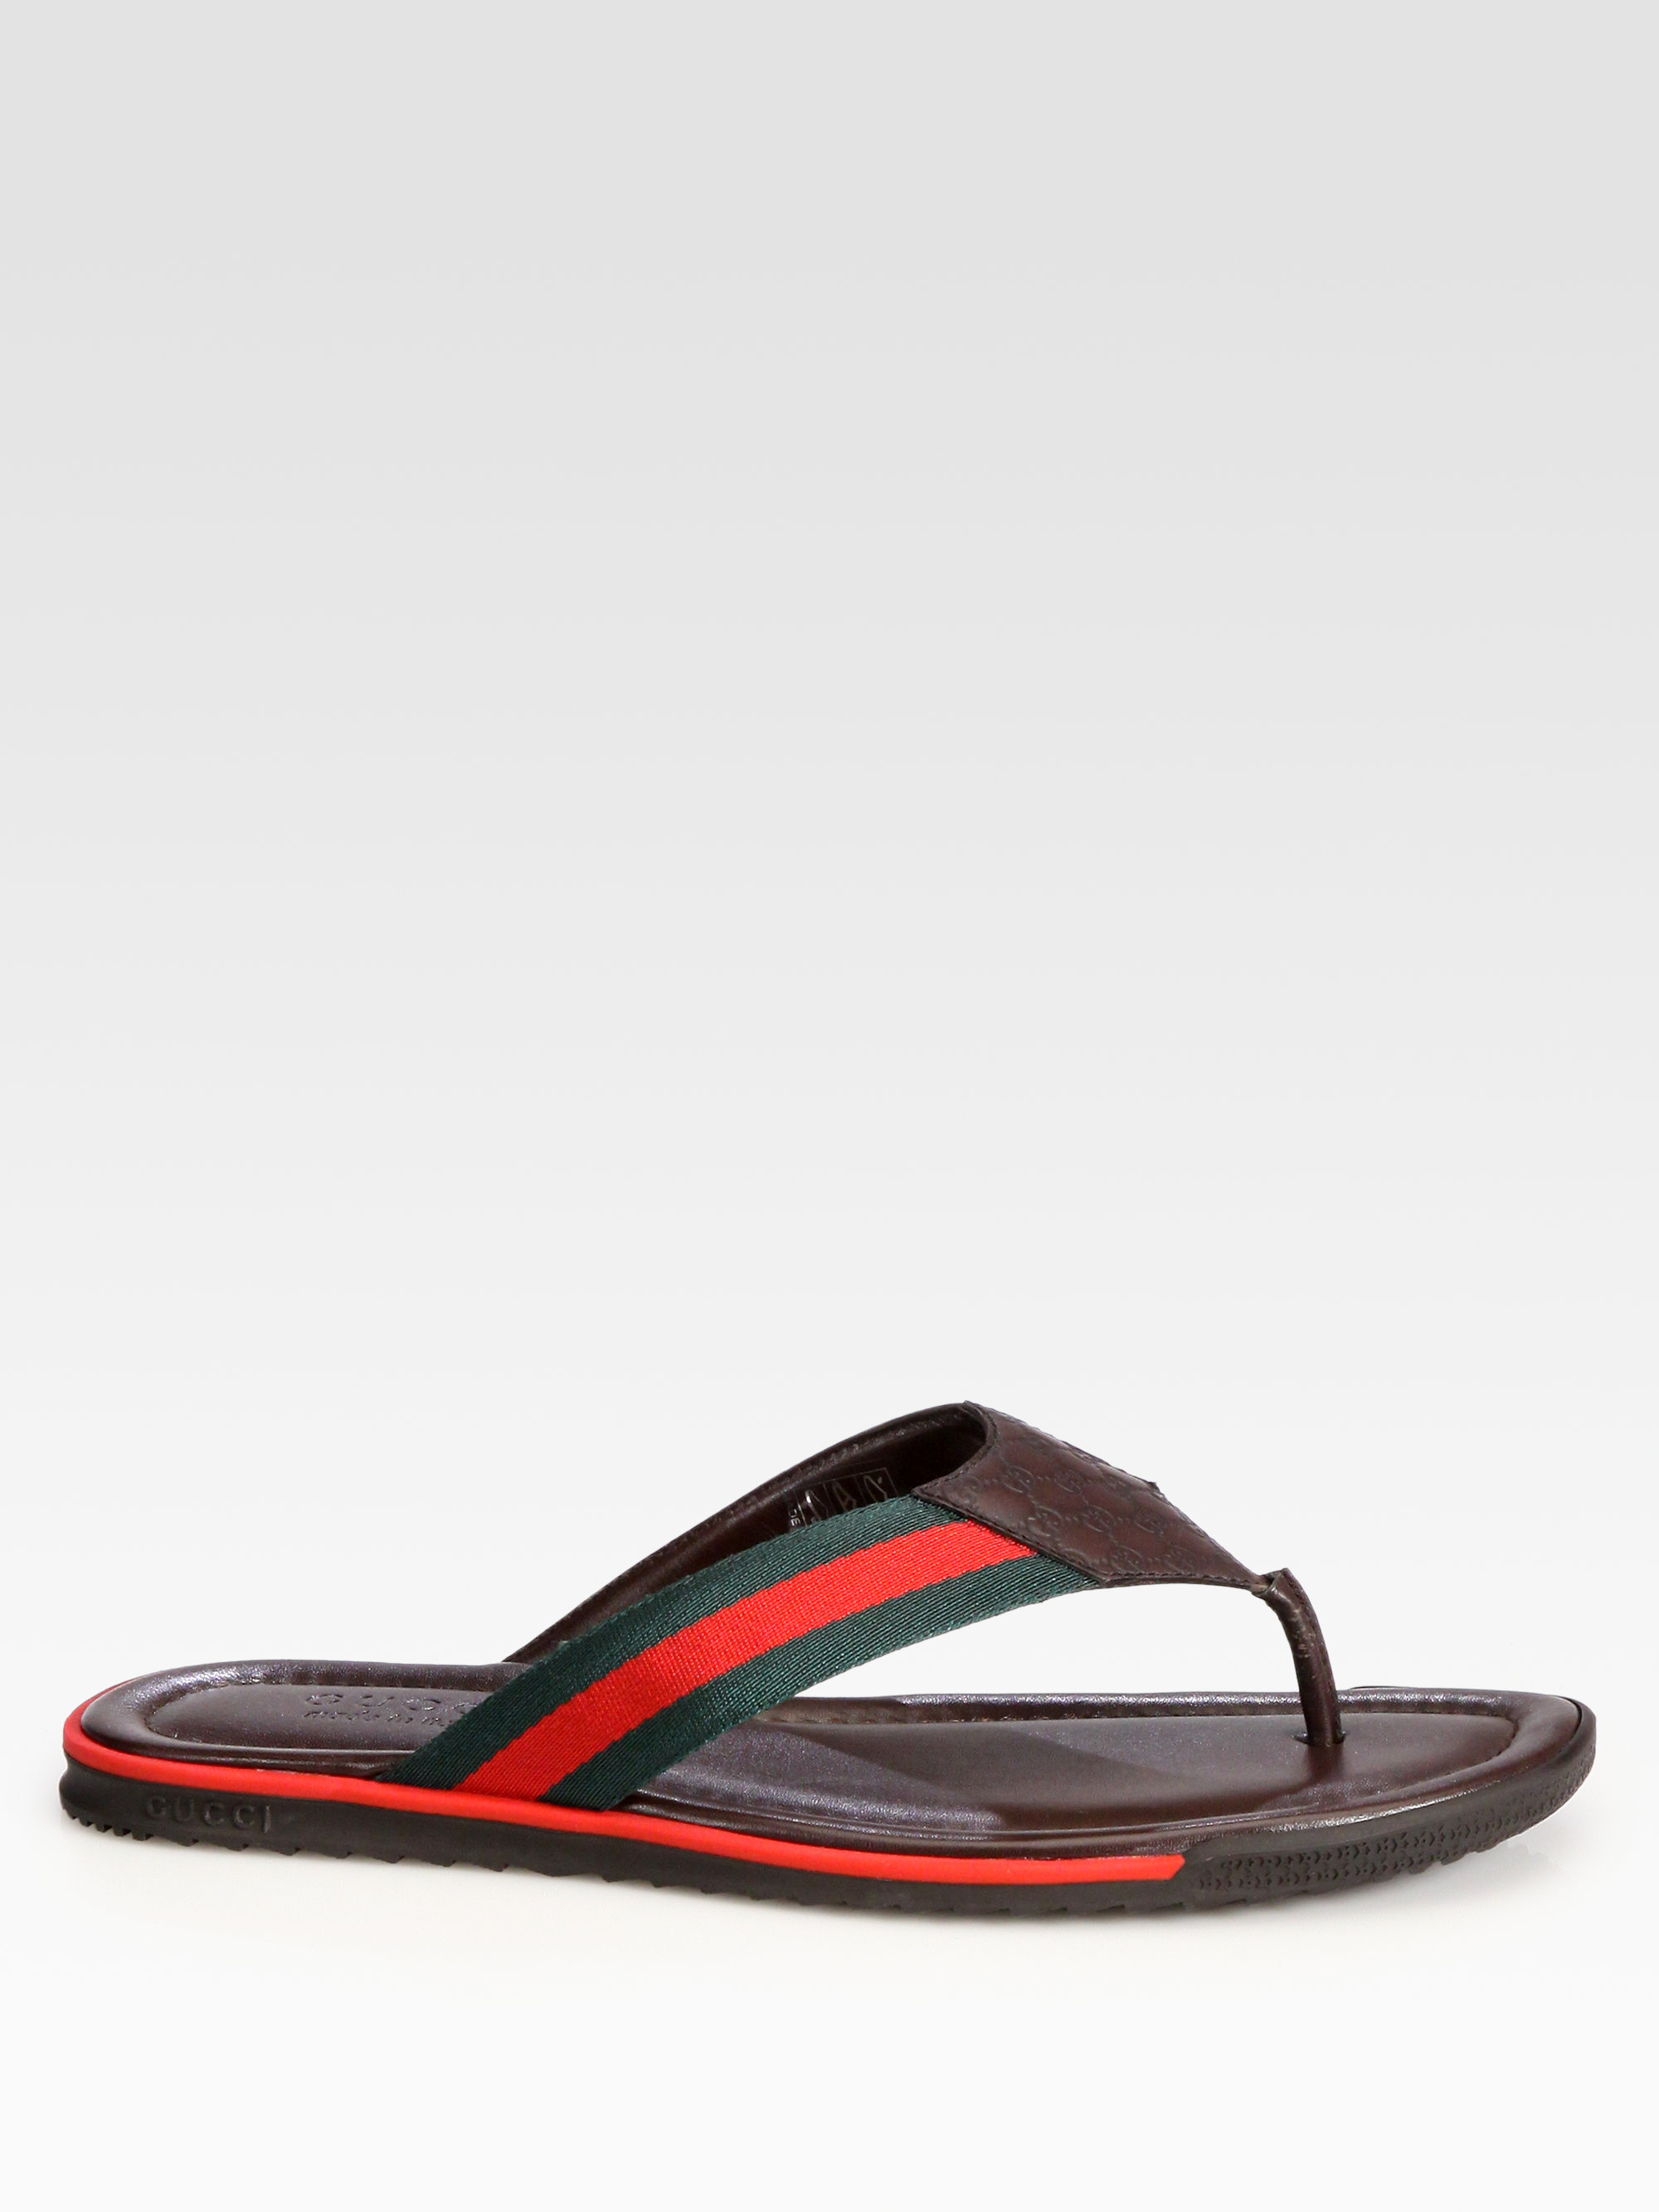 3b40be93a4cd Lyst - Gucci Thong Sandals in Brown for Men